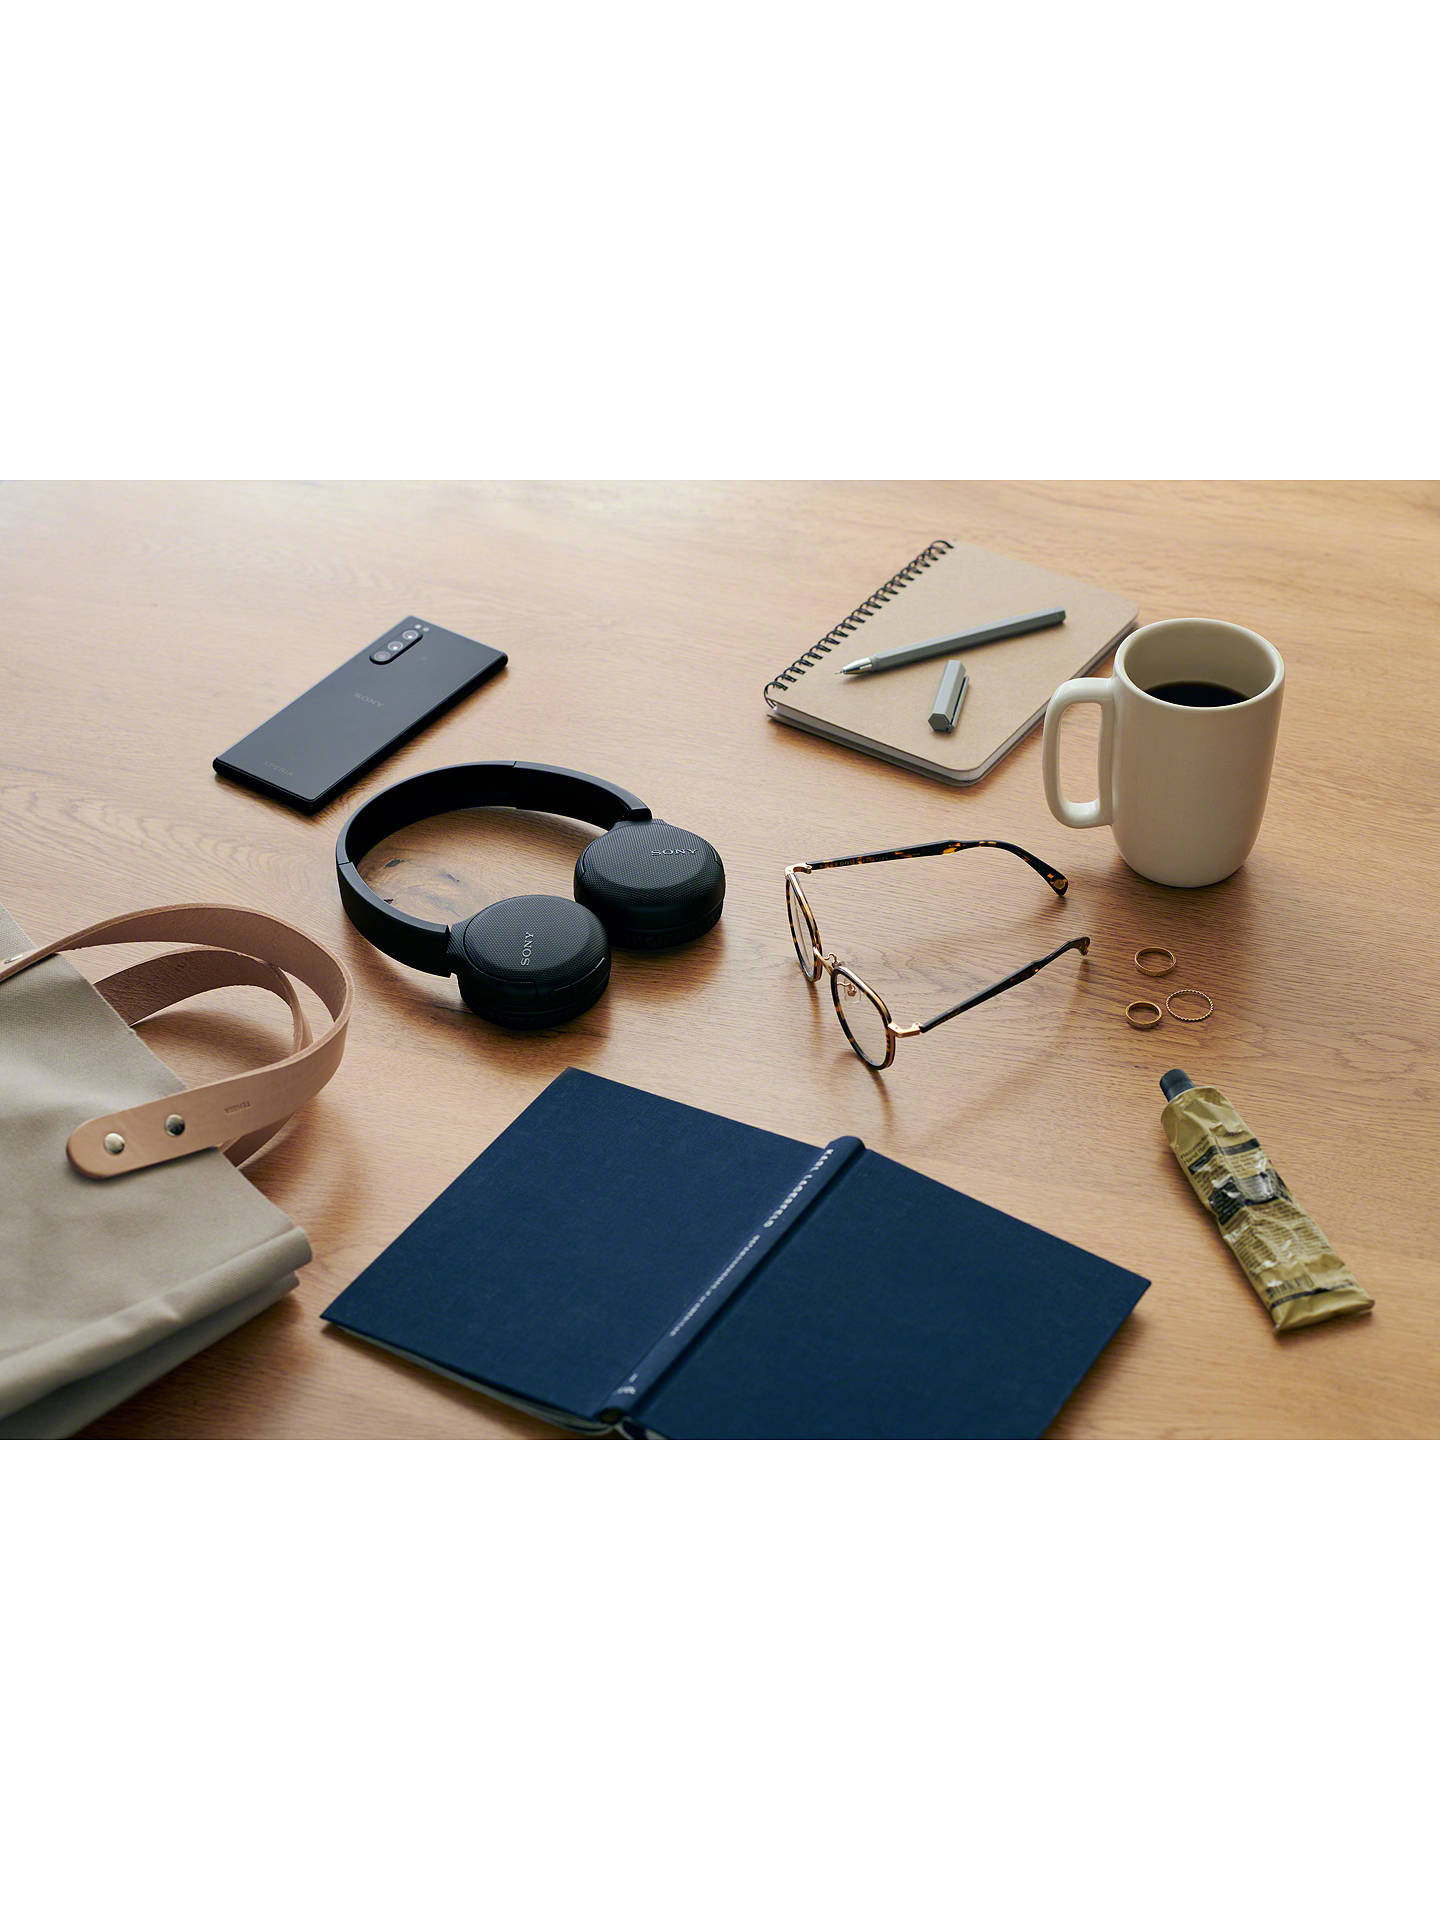 Buy Sony WH-CH510 Bluetooth Wireless On-Ear Headphones with Mic/Remote, Black Online at johnlewis.com